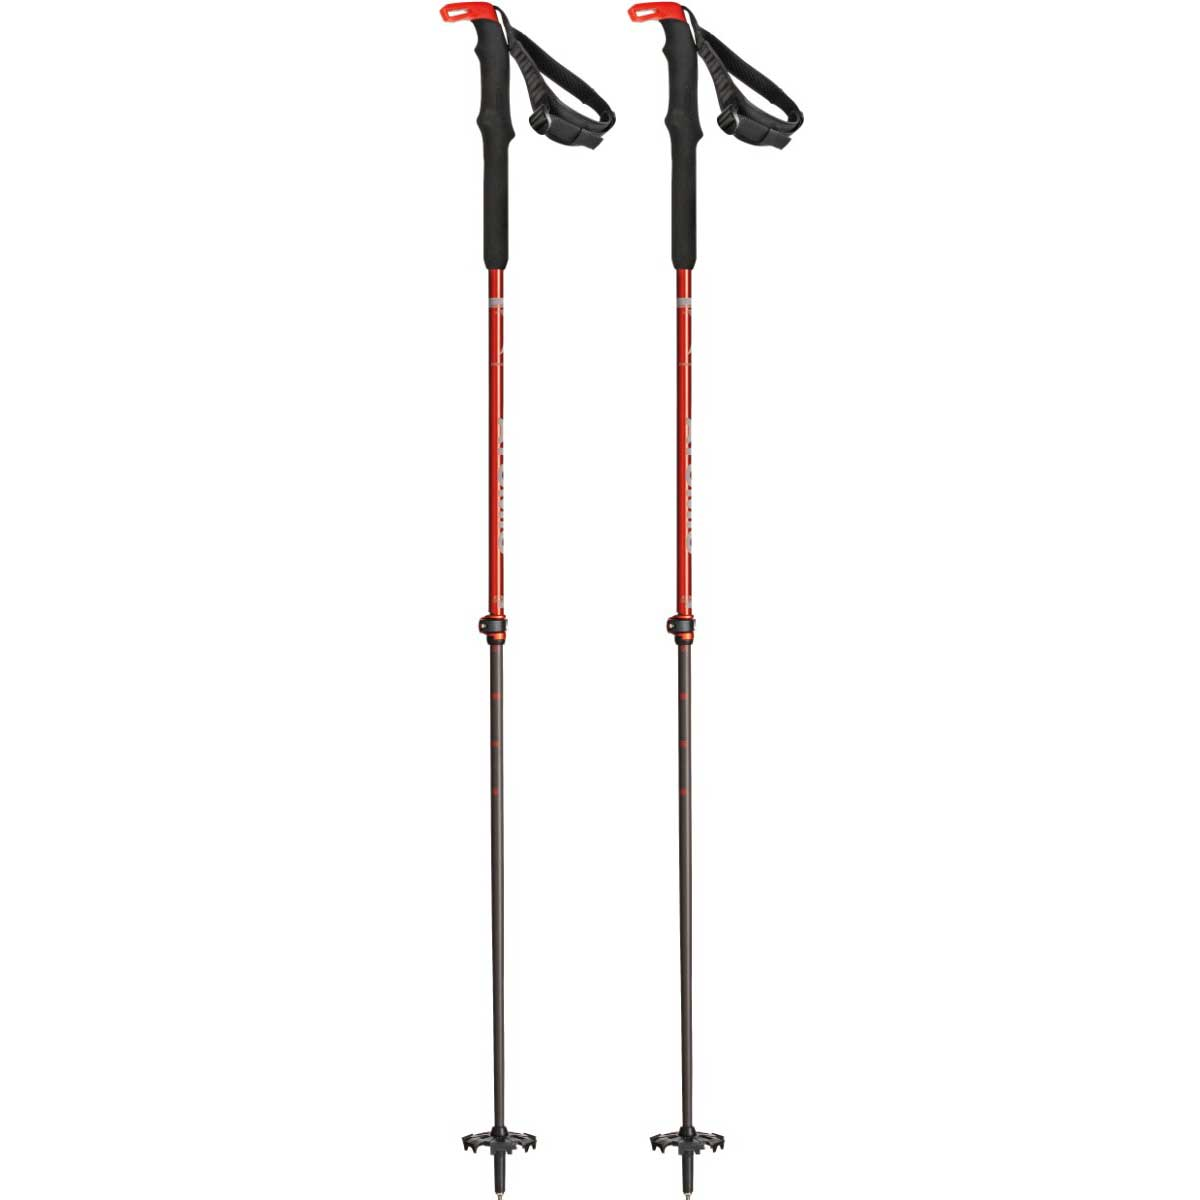 Atomic BCT Touring Carbon SQS telescoping ski poles in Red and Grey